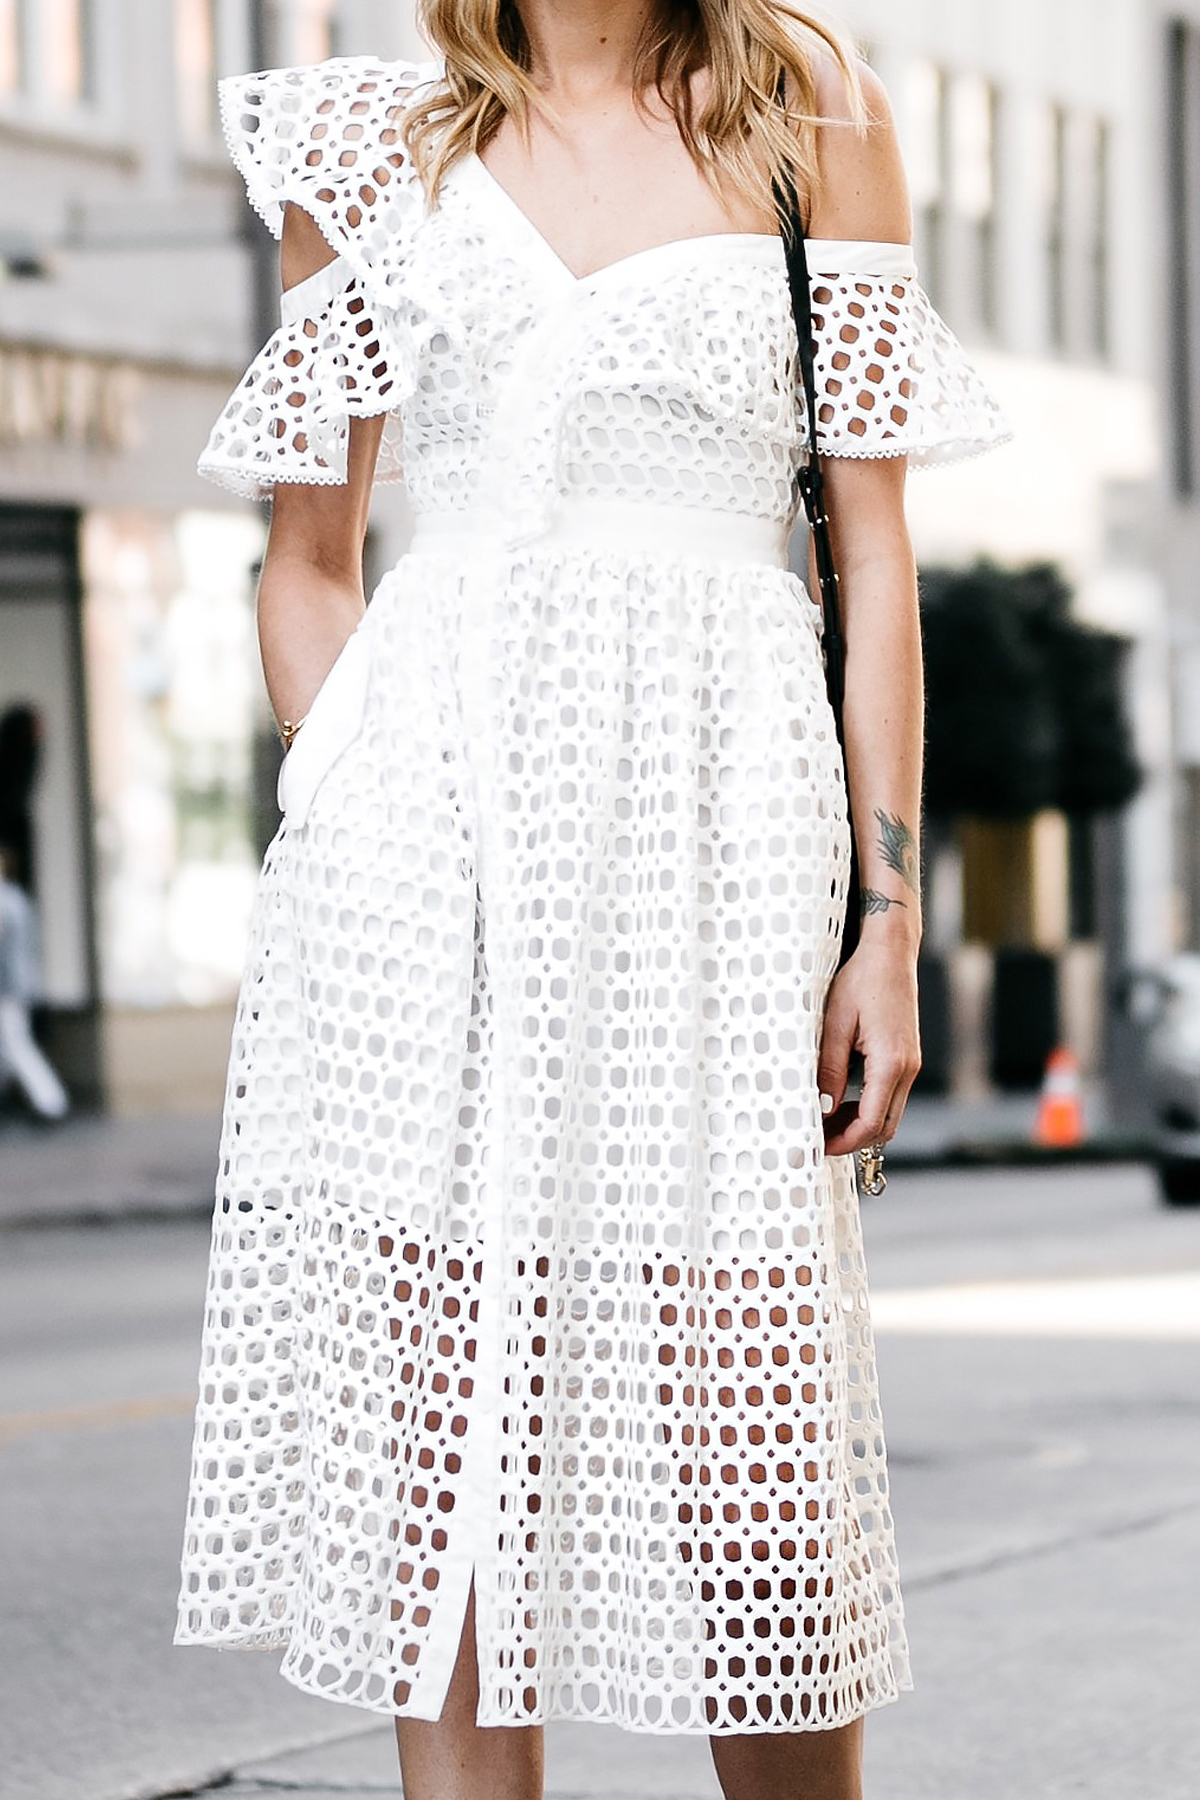 Fashion Jackson, Dallas Blogger, Fashion Blogger, Street Style, Self-Portrait White Lace Ruffle Sleeve Midi Dress, Chloe Faye Black Handbag